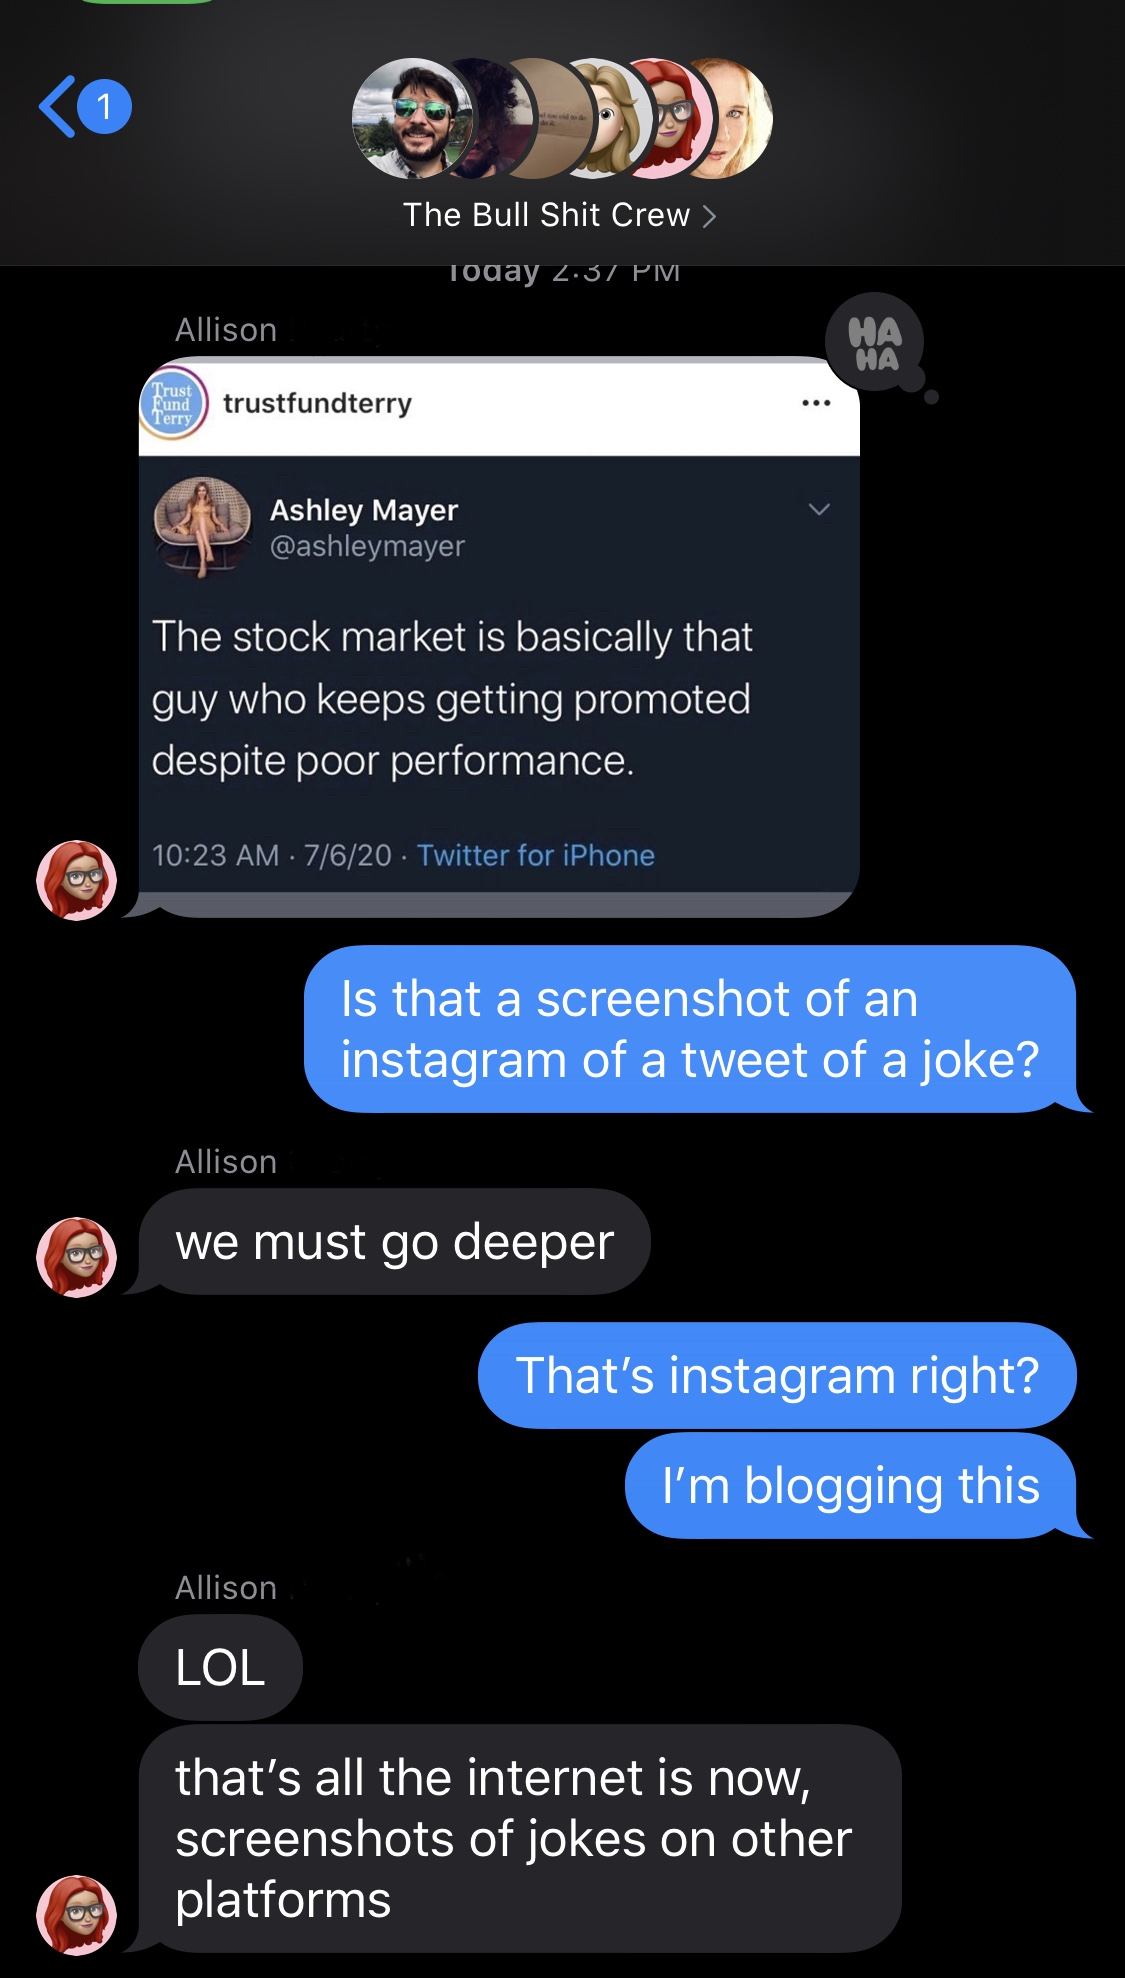 A screenshot of a group text message chain where  Allison posted a screenshot of an  Instagram of a screenshot of a twitter post of an old joke